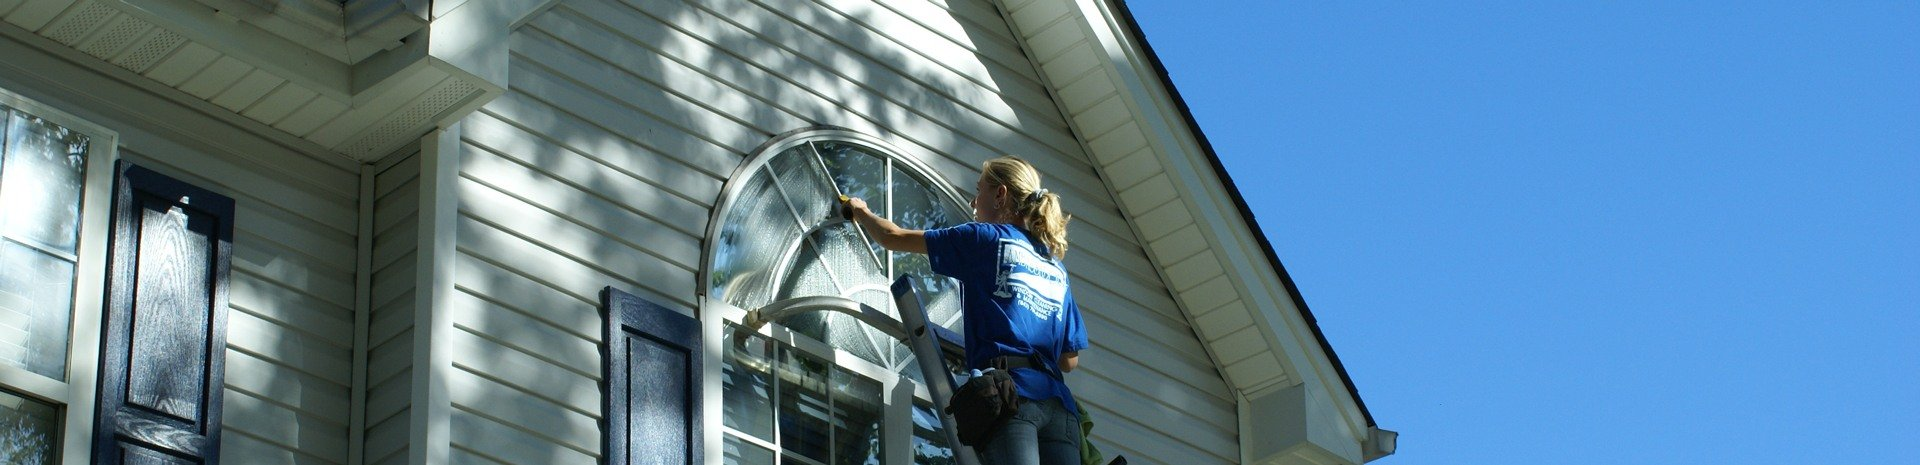 residential window washing and cleaning